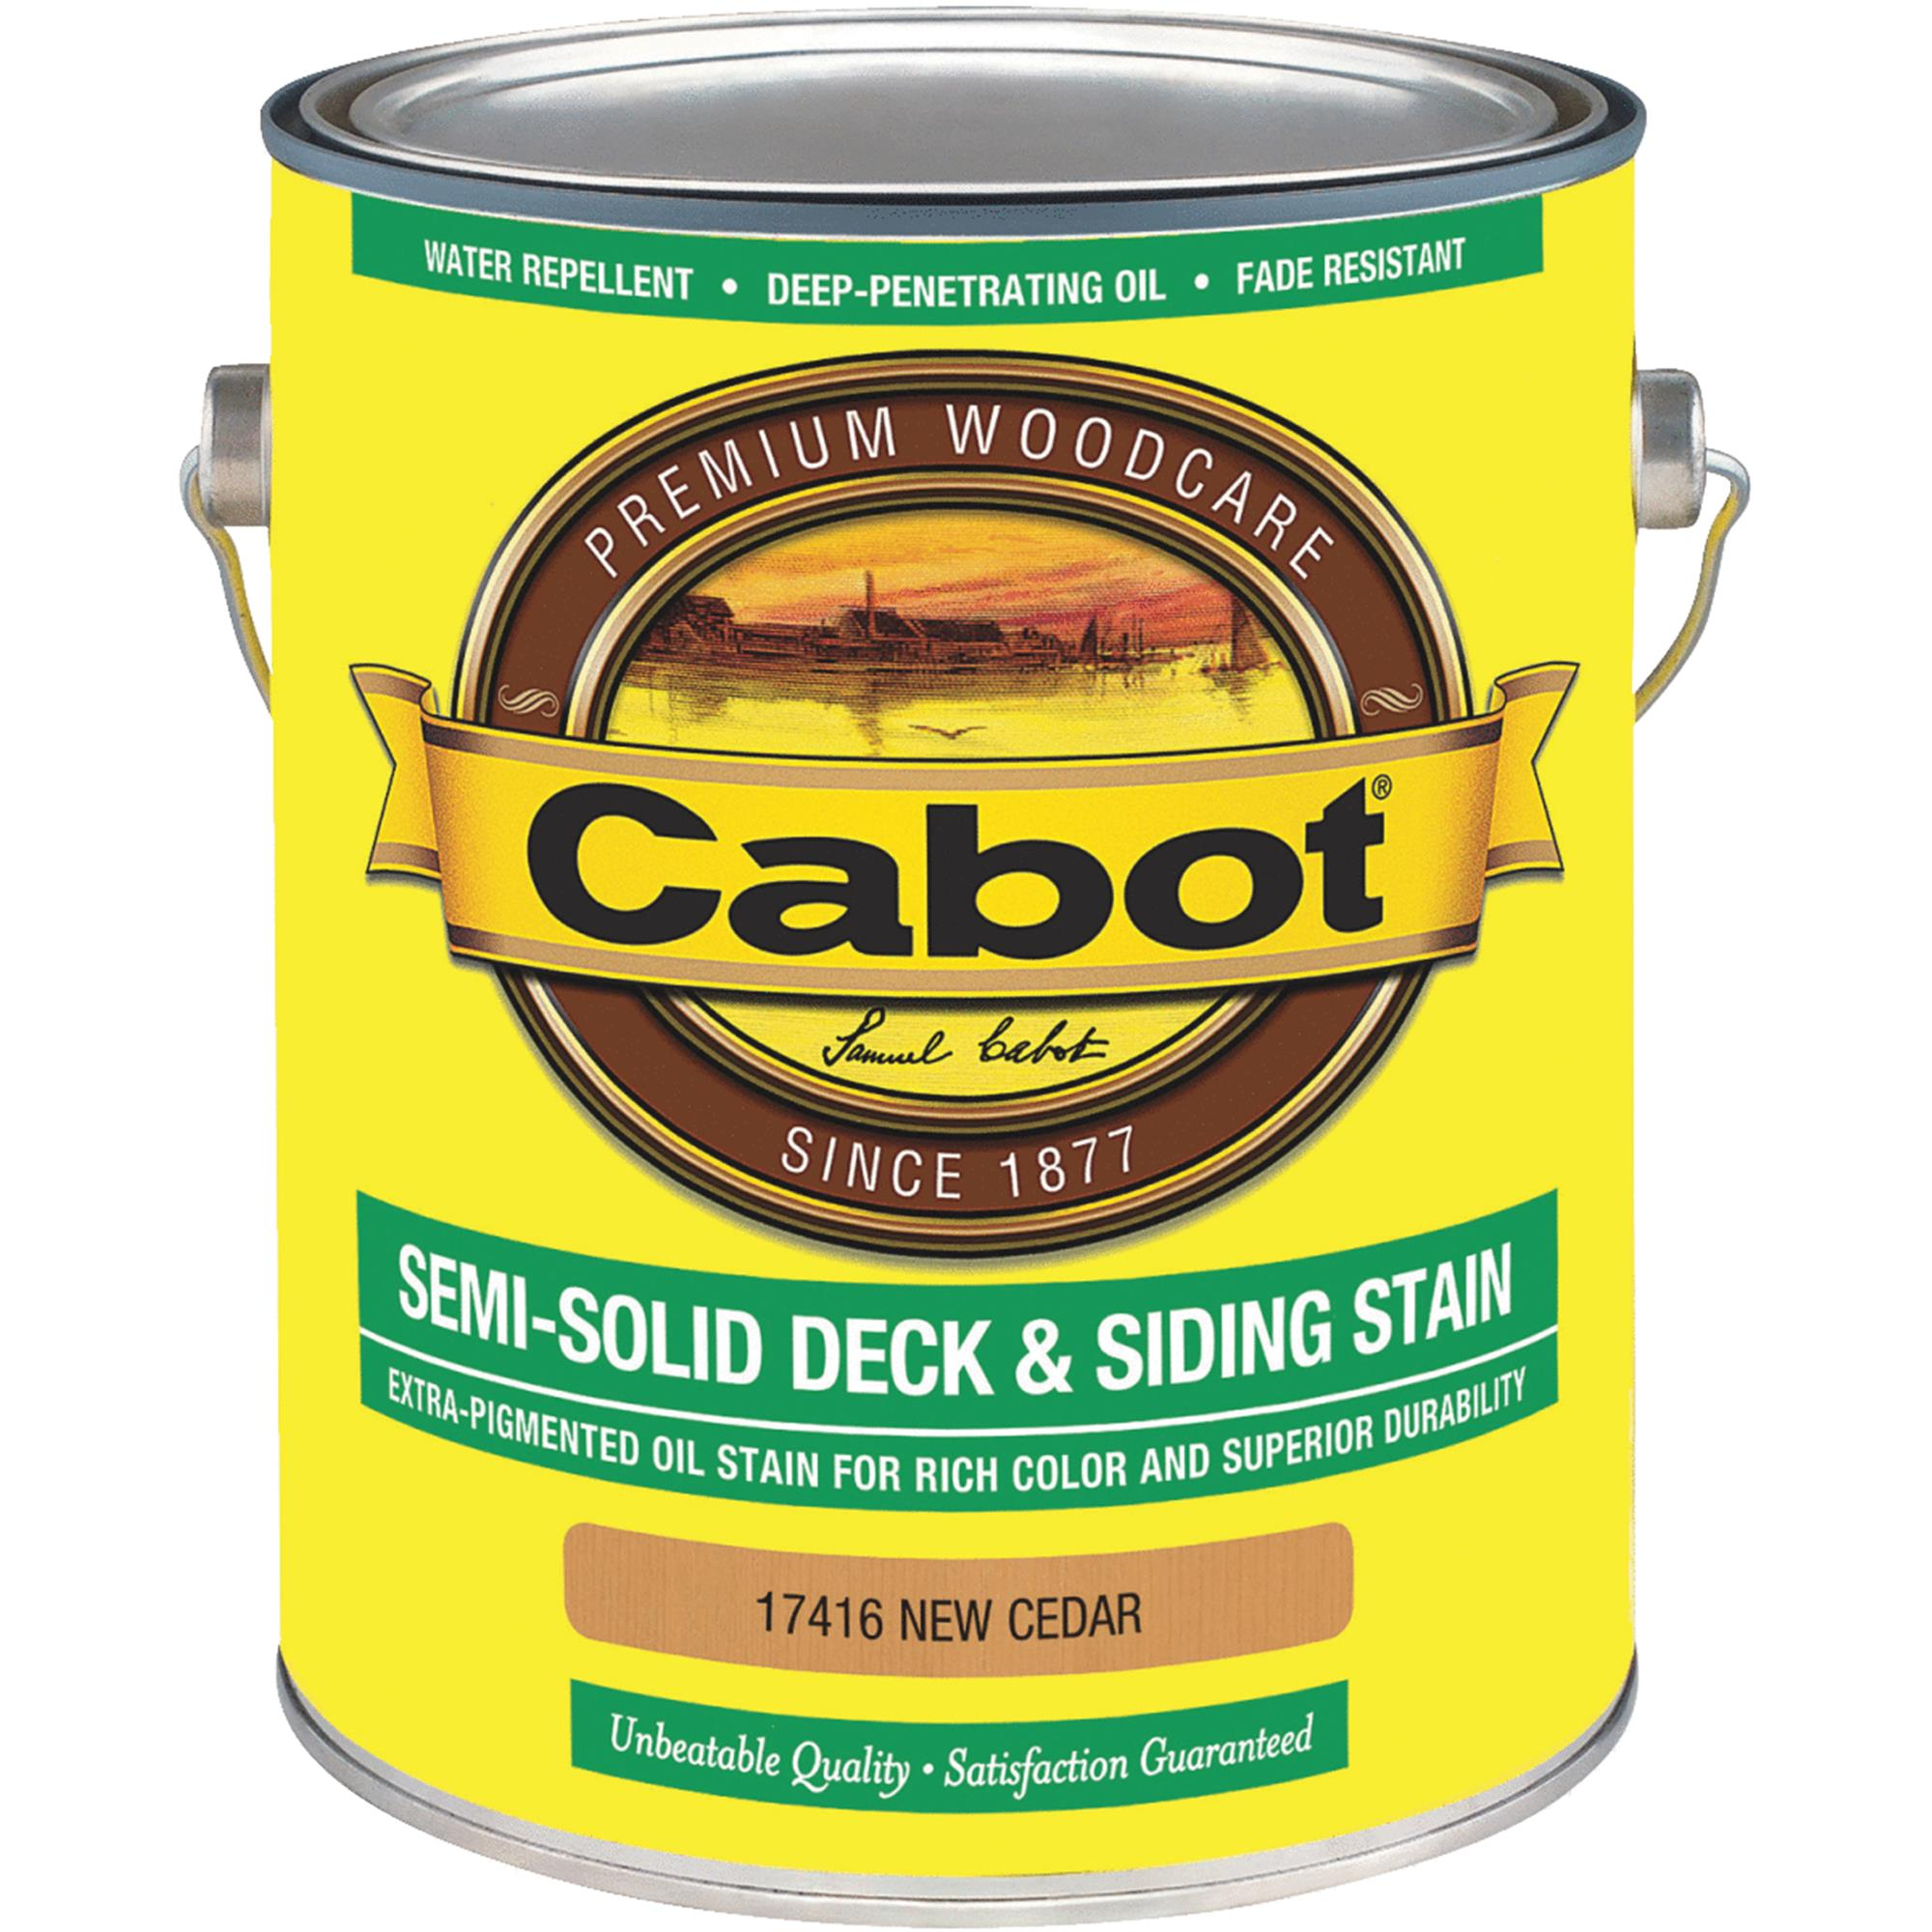 Cabot VOC Semi-Solid Deck & Siding Stain